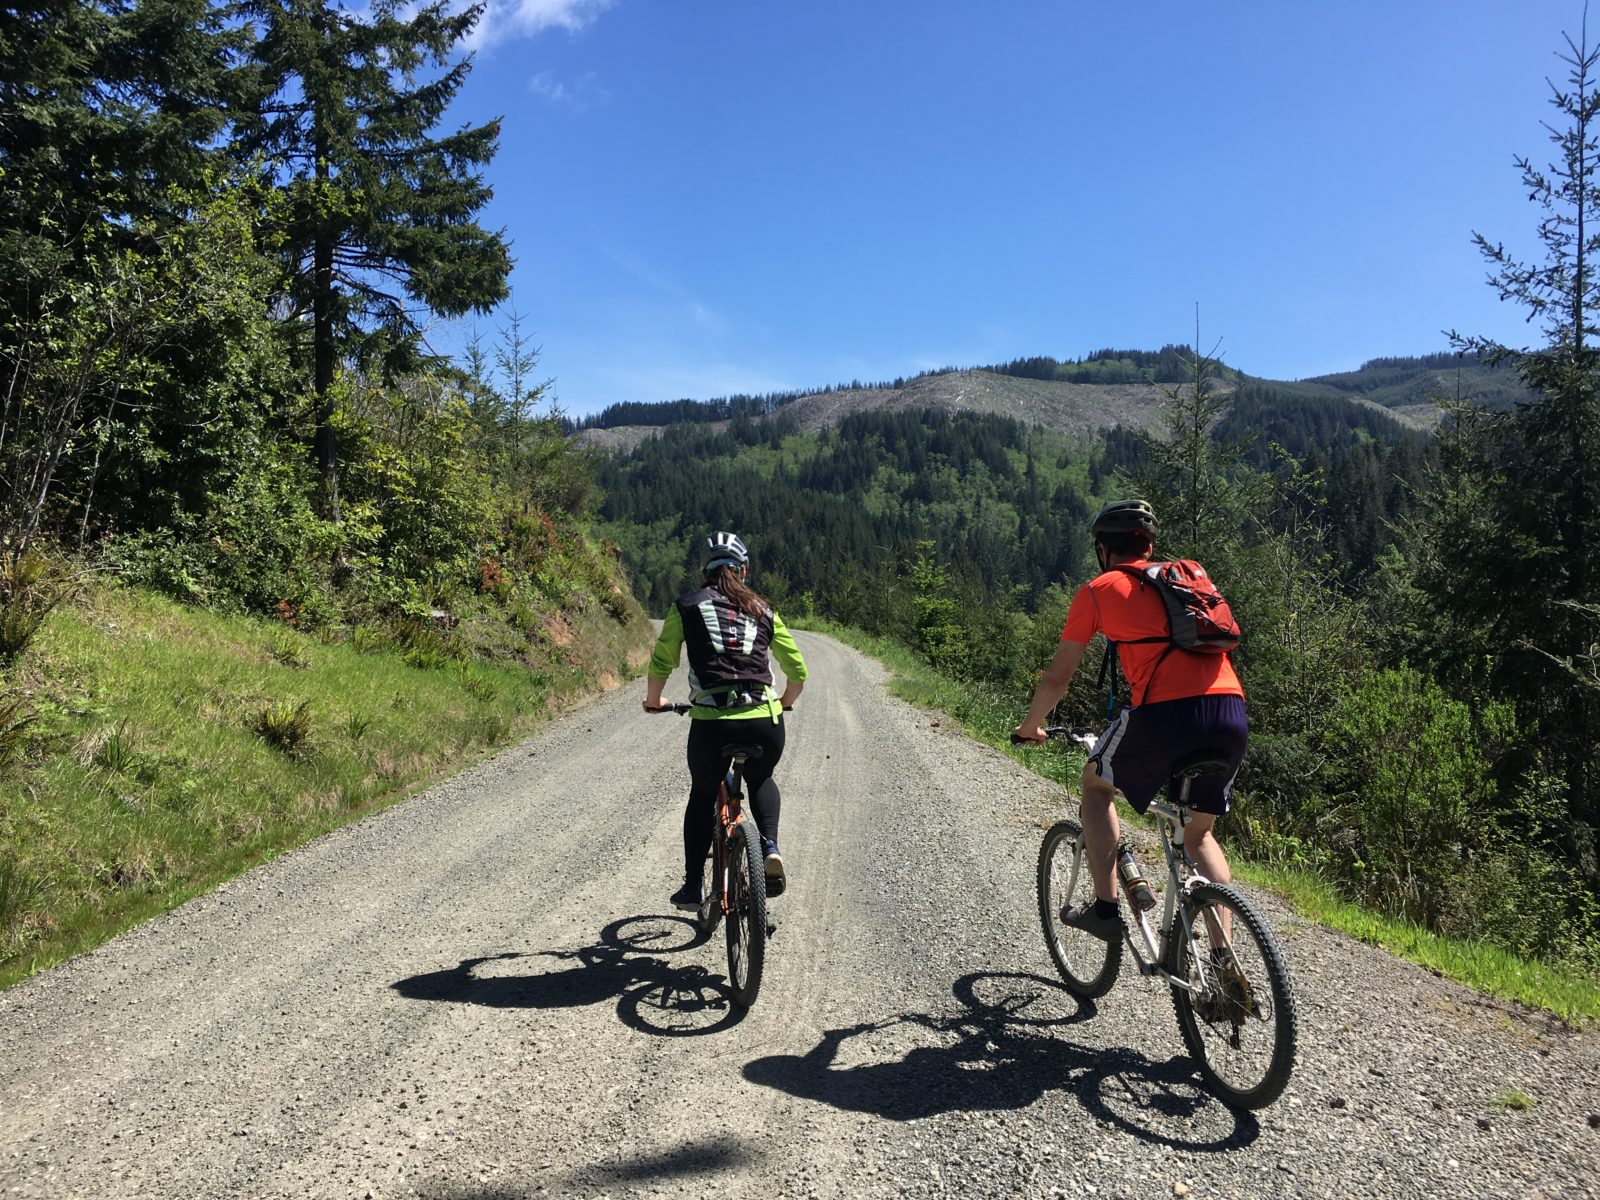 Full Day Sixes River to Elk River Gravel Ride